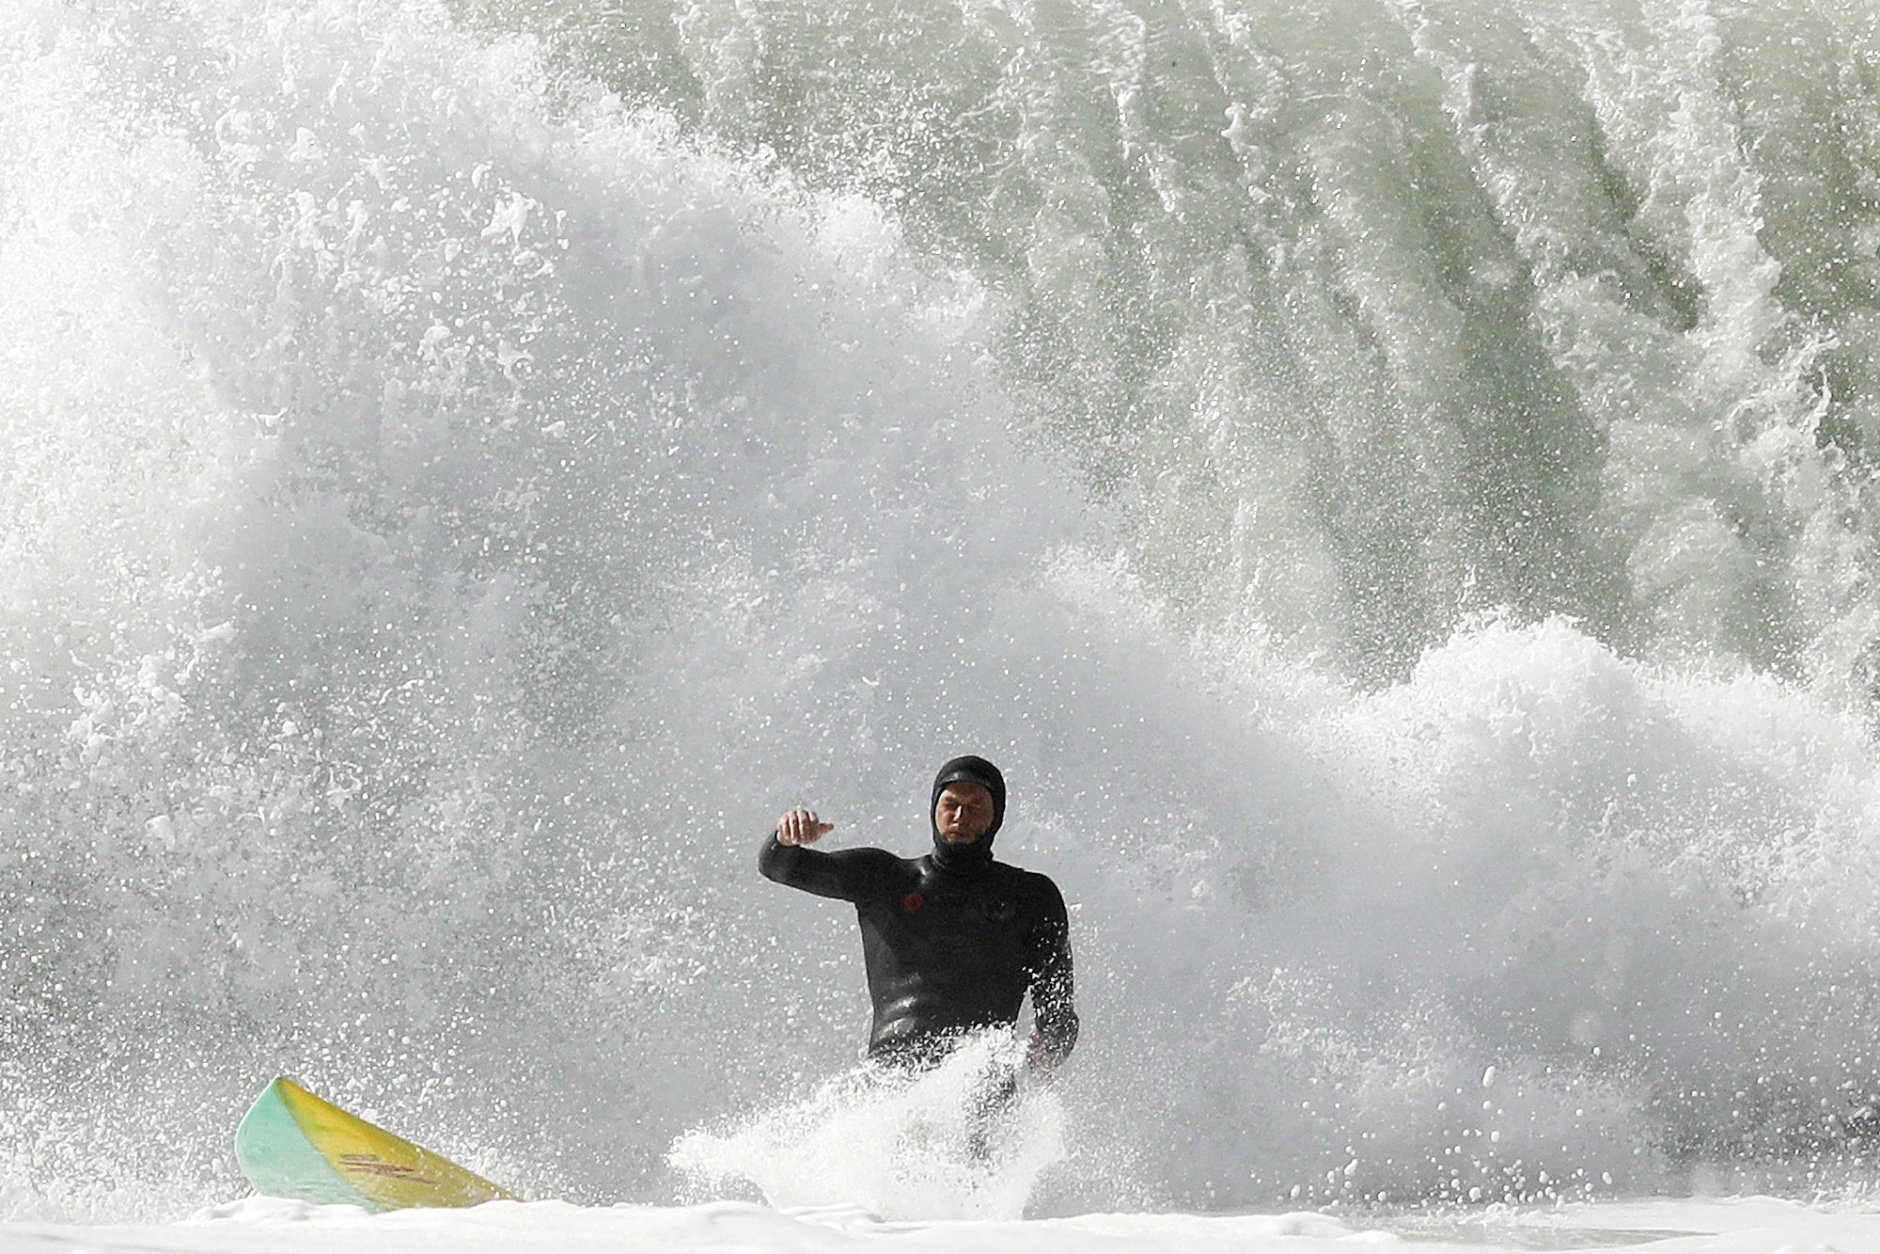 A surfer falls on a wave at Blacks Beach Friday, Jan. 19, 2018, in San Diego. A winter storm swept into California Friday, bringing large waves to the coast, and much-needed snow in higher elevations of the Sierra Nevada. (AP Photo/Gregory Bull)